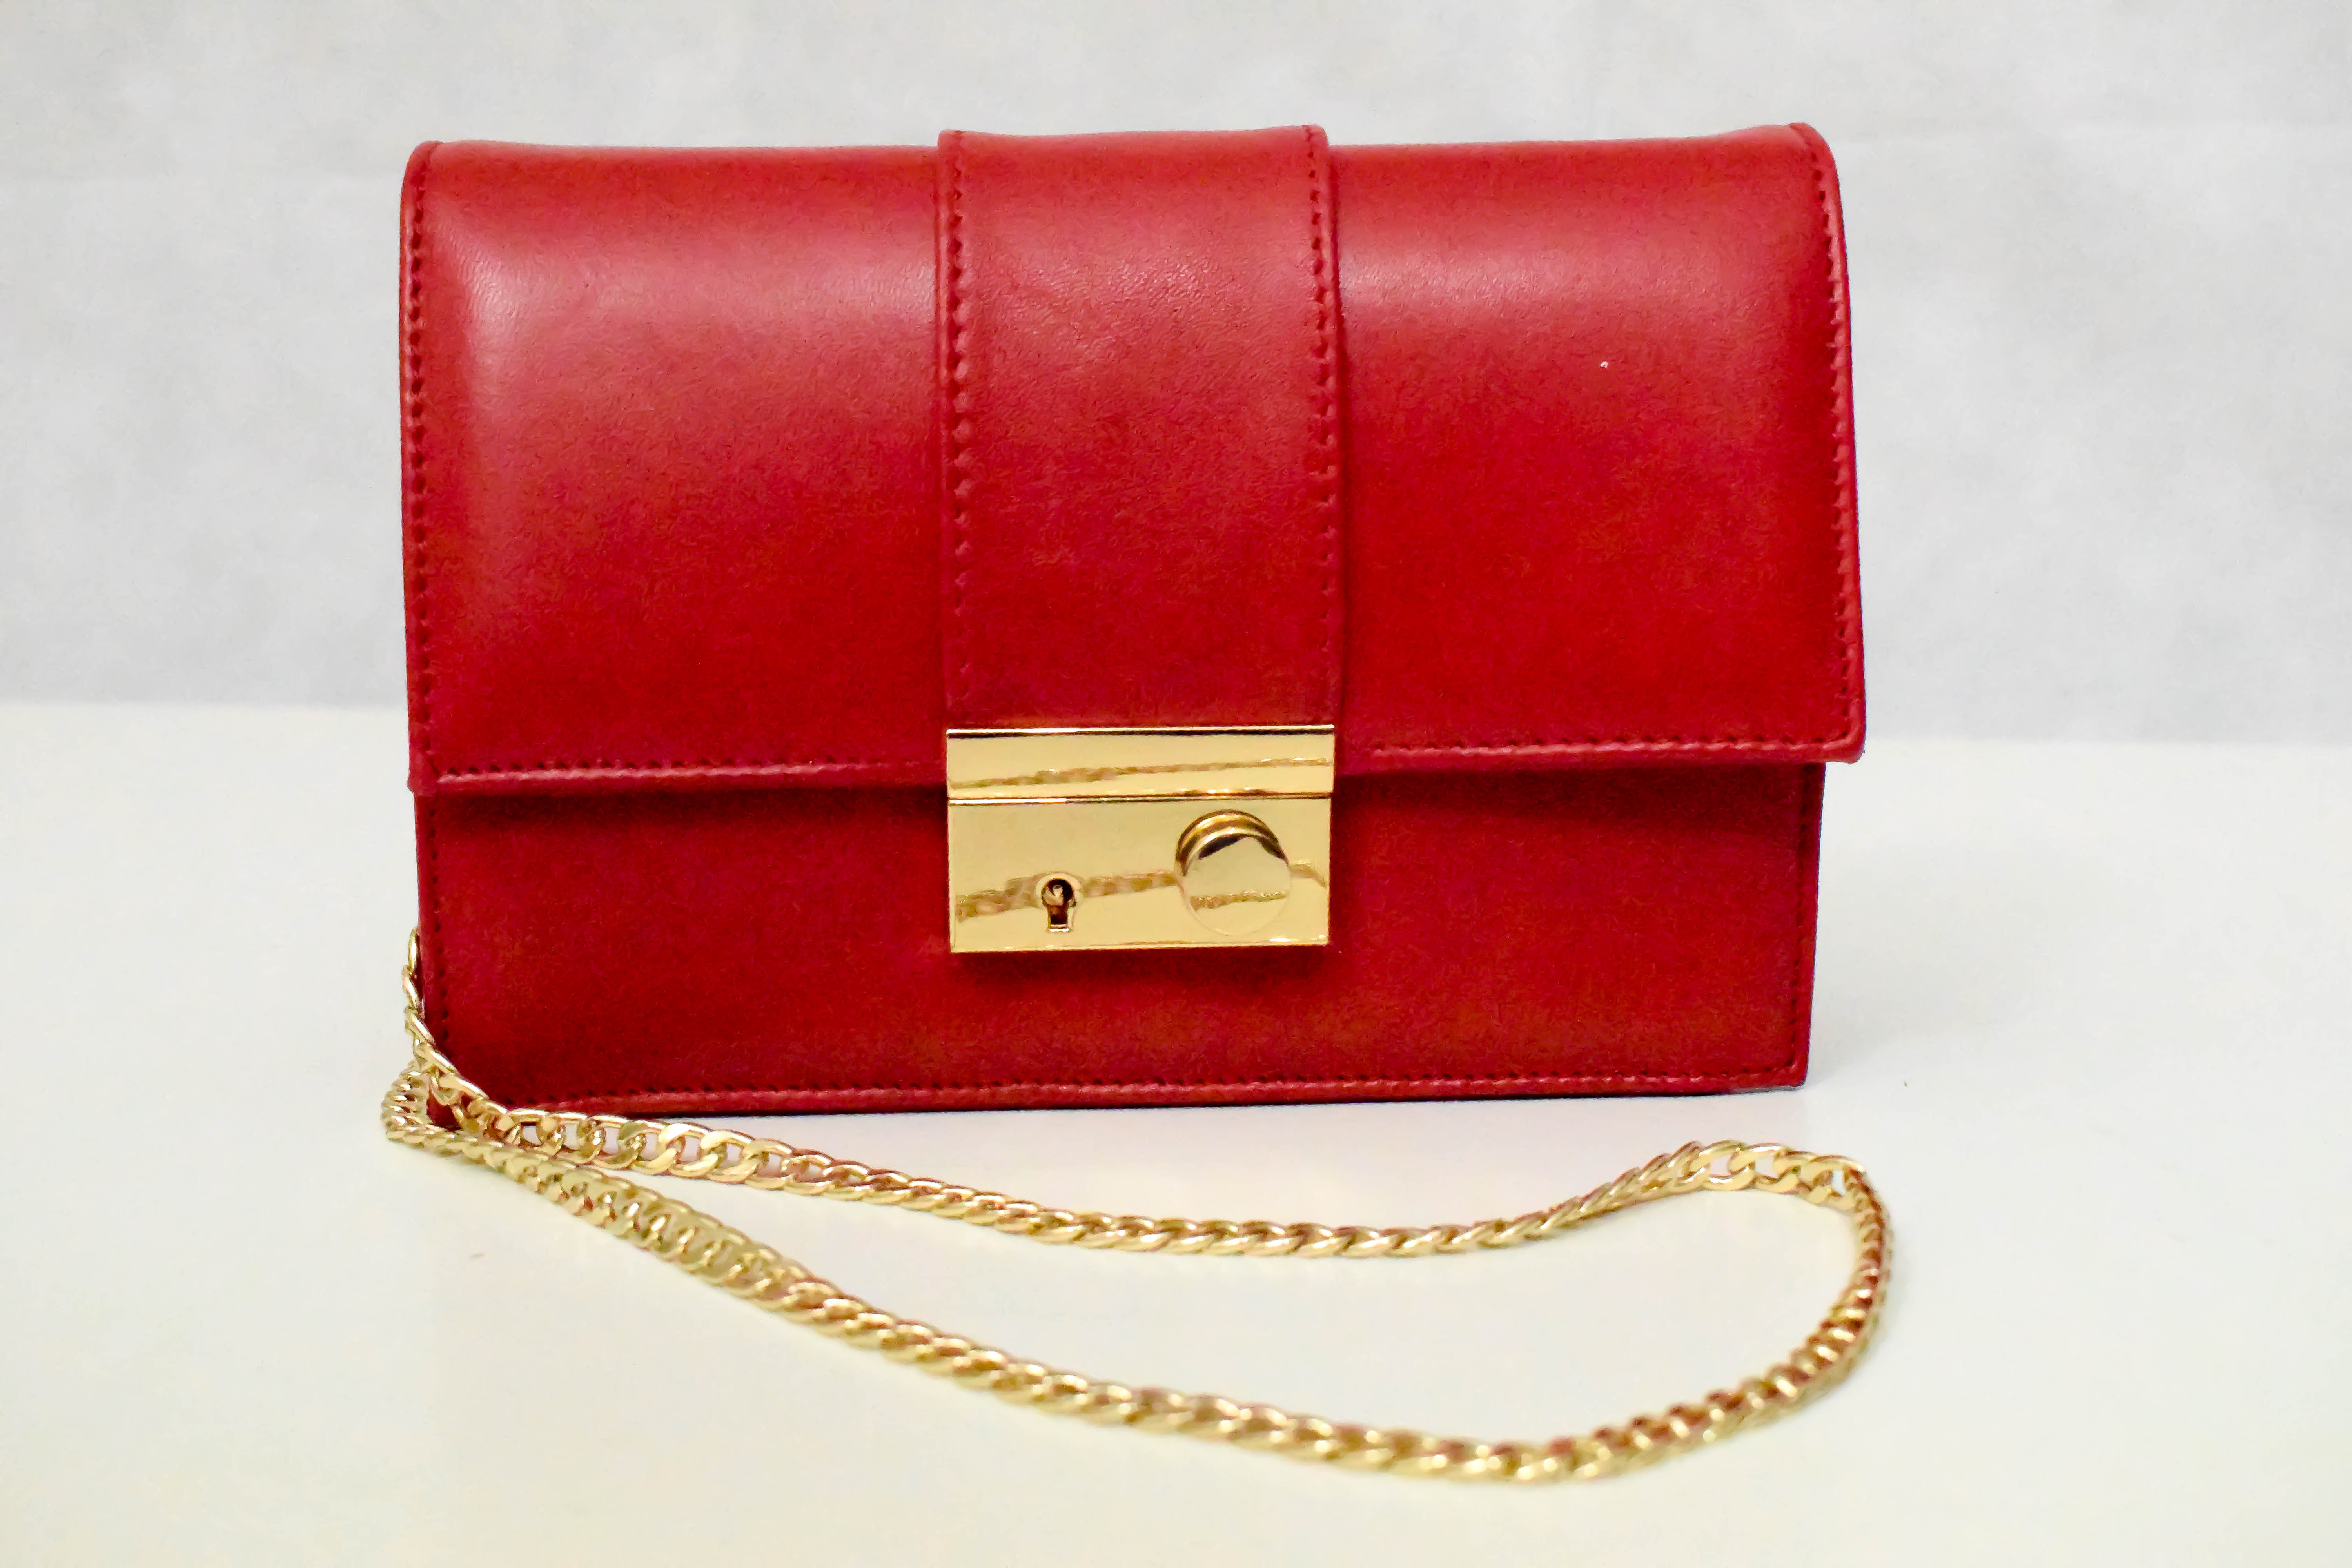 red leather handbag with gold chain